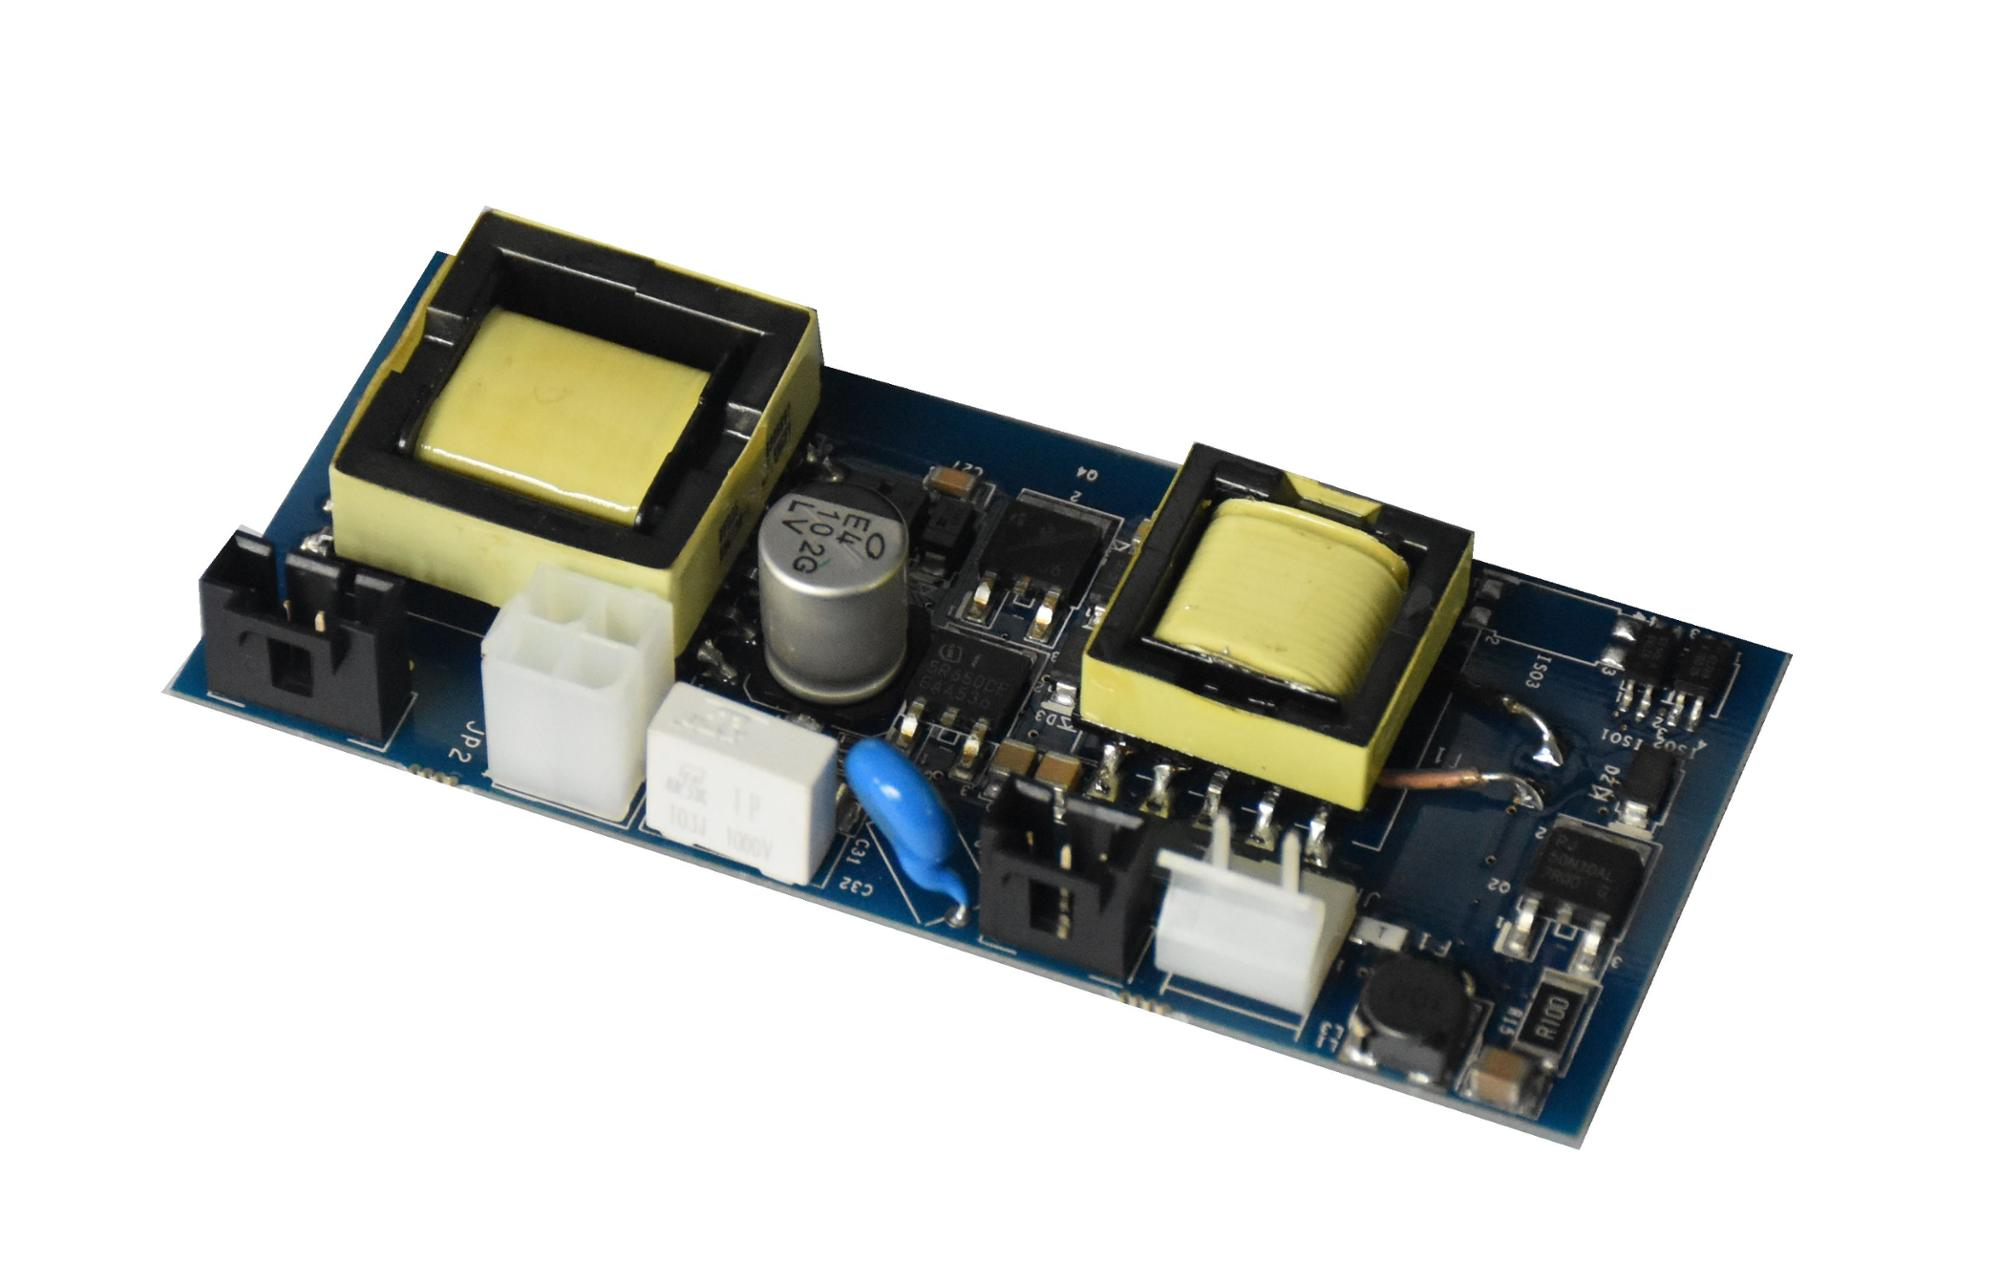 Oem Pcb Prototype Assembly Wholesale Suppliers Shenzhen Electronic Printed Circuit Board Manufacturerpcb Alibaba